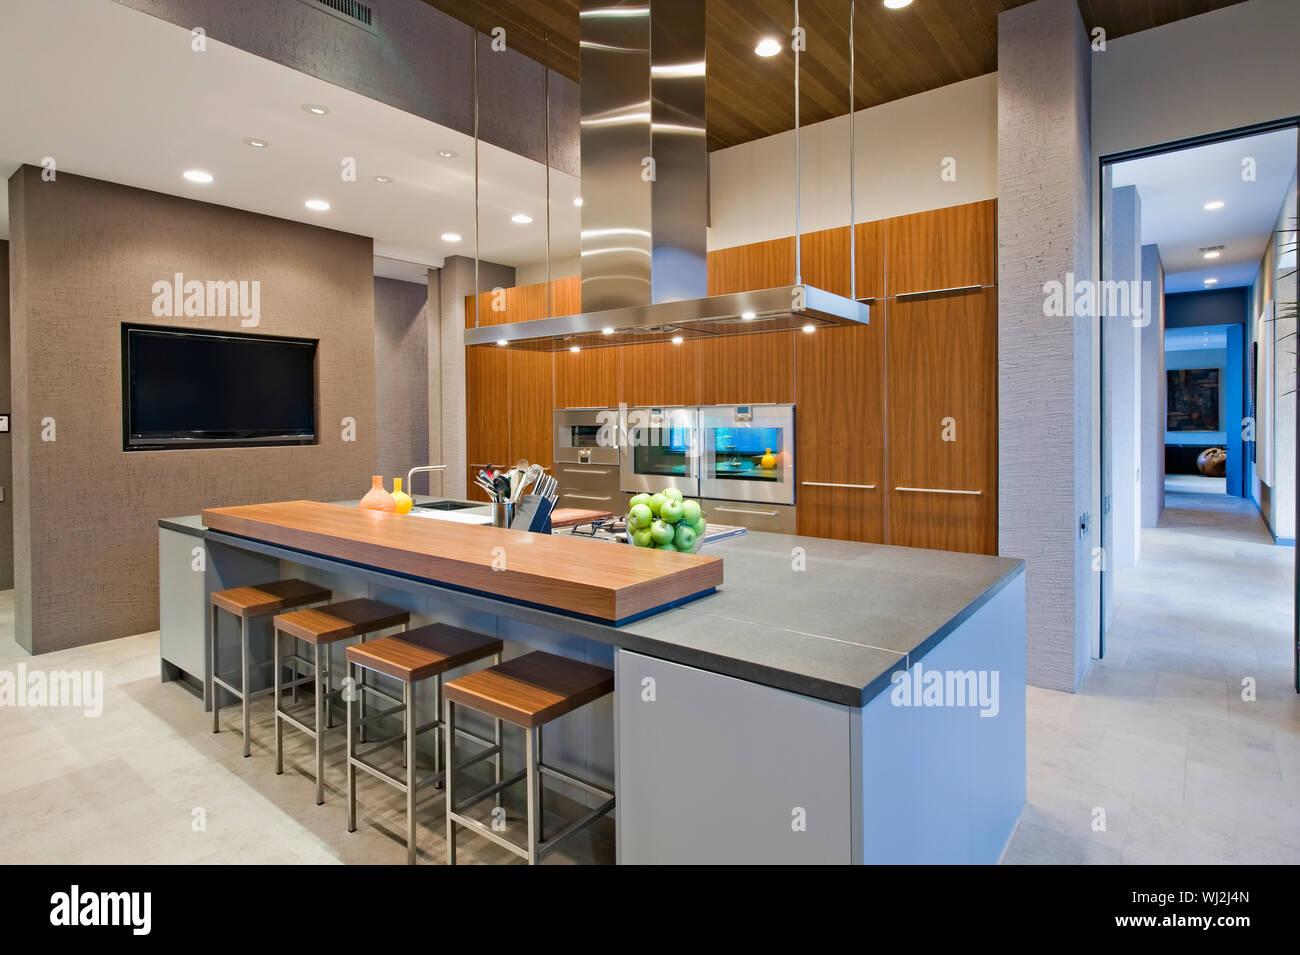 Bar stools at breakfast bar in contemporary kitchen Stock ...